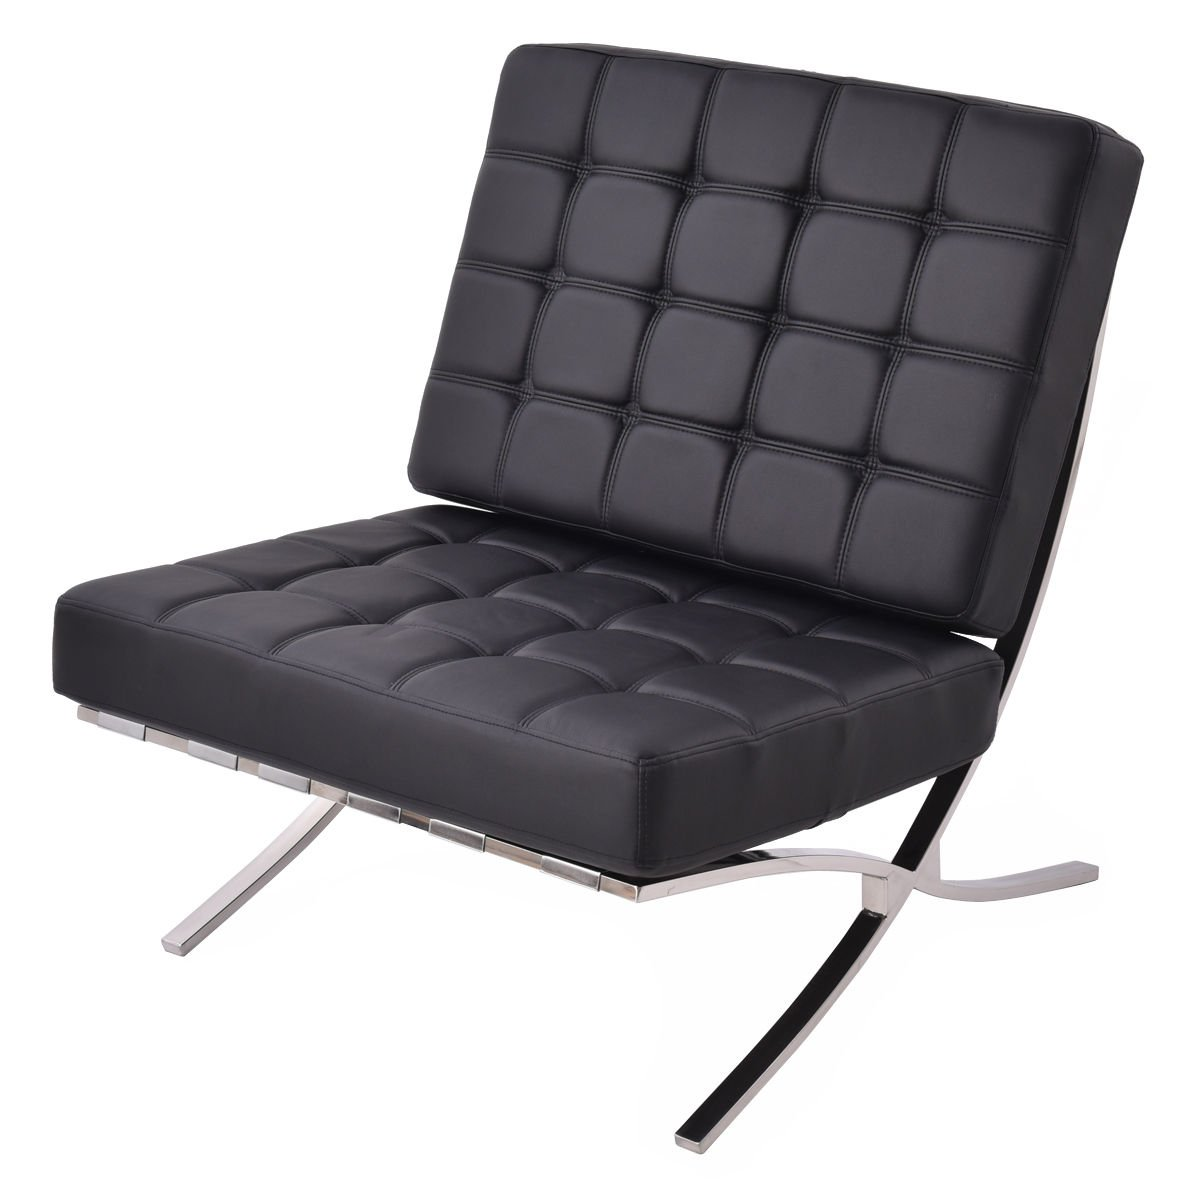 Giantex PU leather Pavilion Chair Barcelona Style Steel Frame Chaise Lounge Modern (Black)